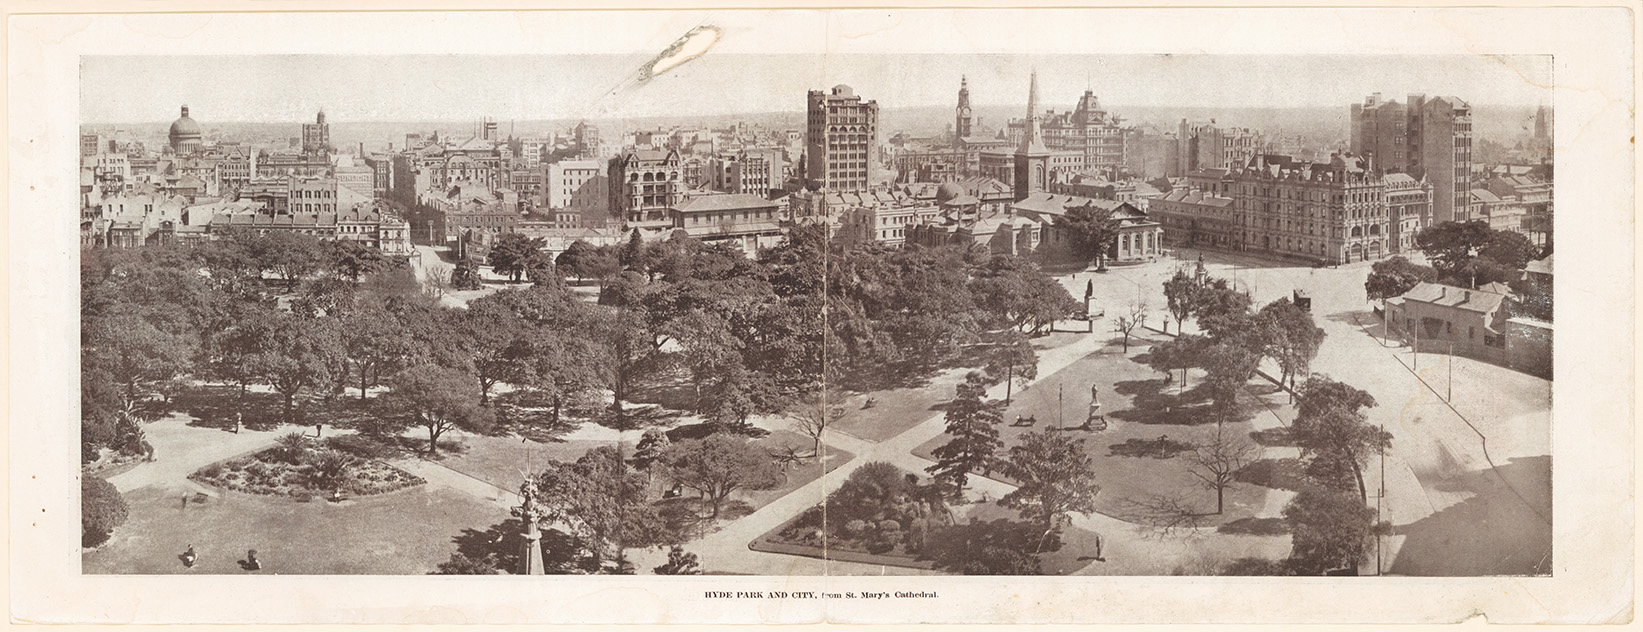 Hyde Park and City from St Mary's Cathedral, c.1915. Digital ID 20499_a050_000008